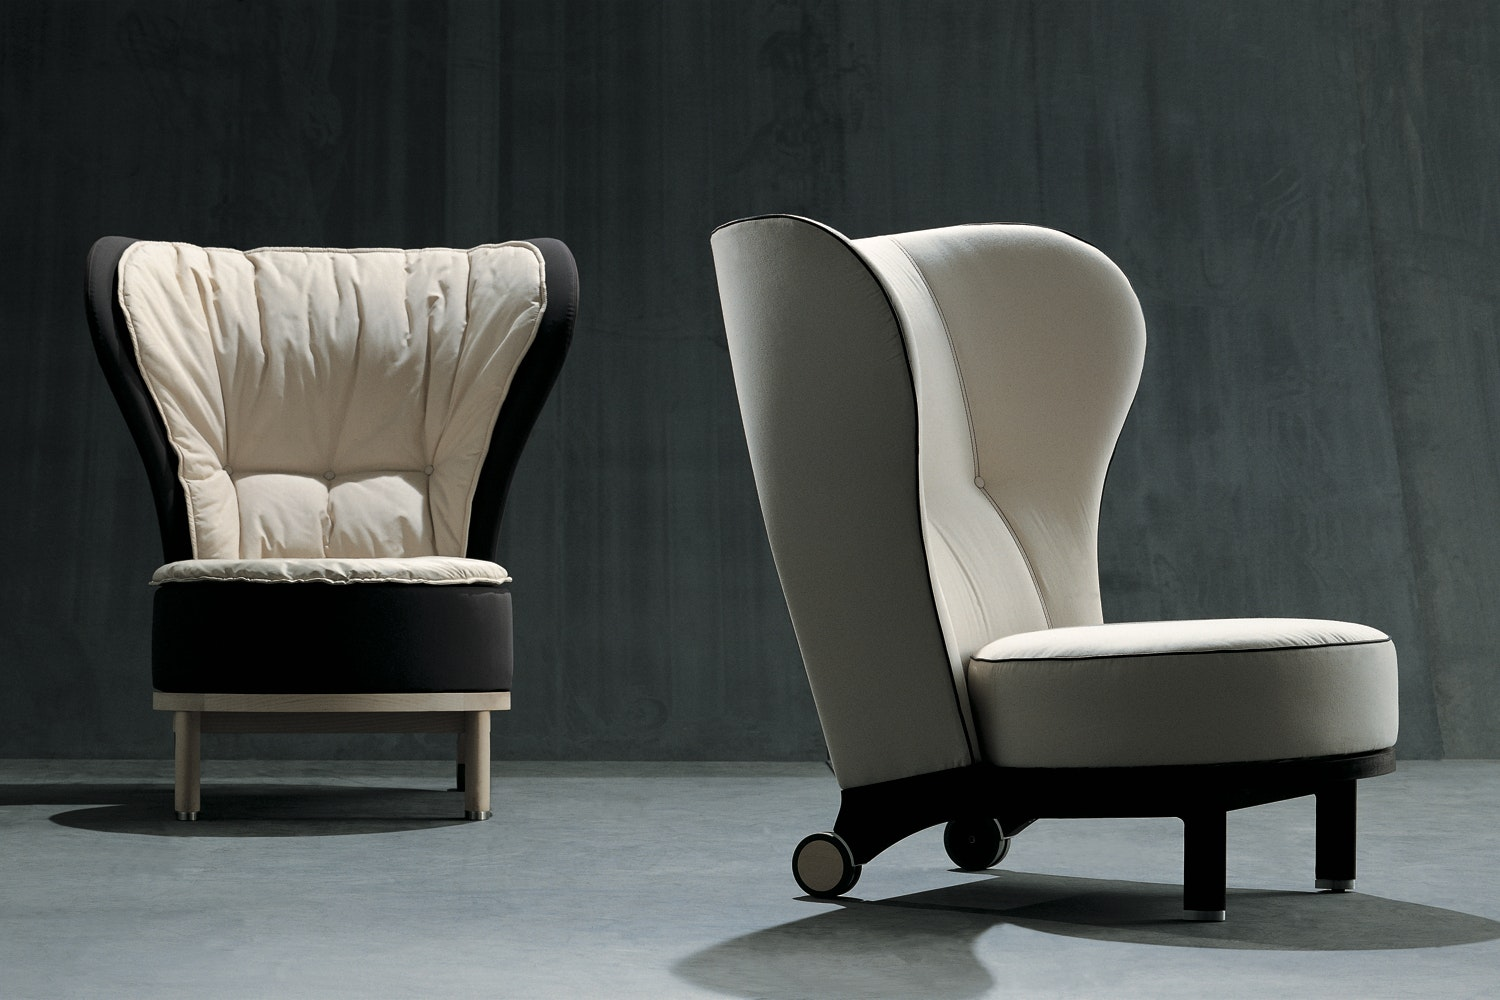 Rea Armchair & Ottoman by Chi Wing Lo for Giorgetti